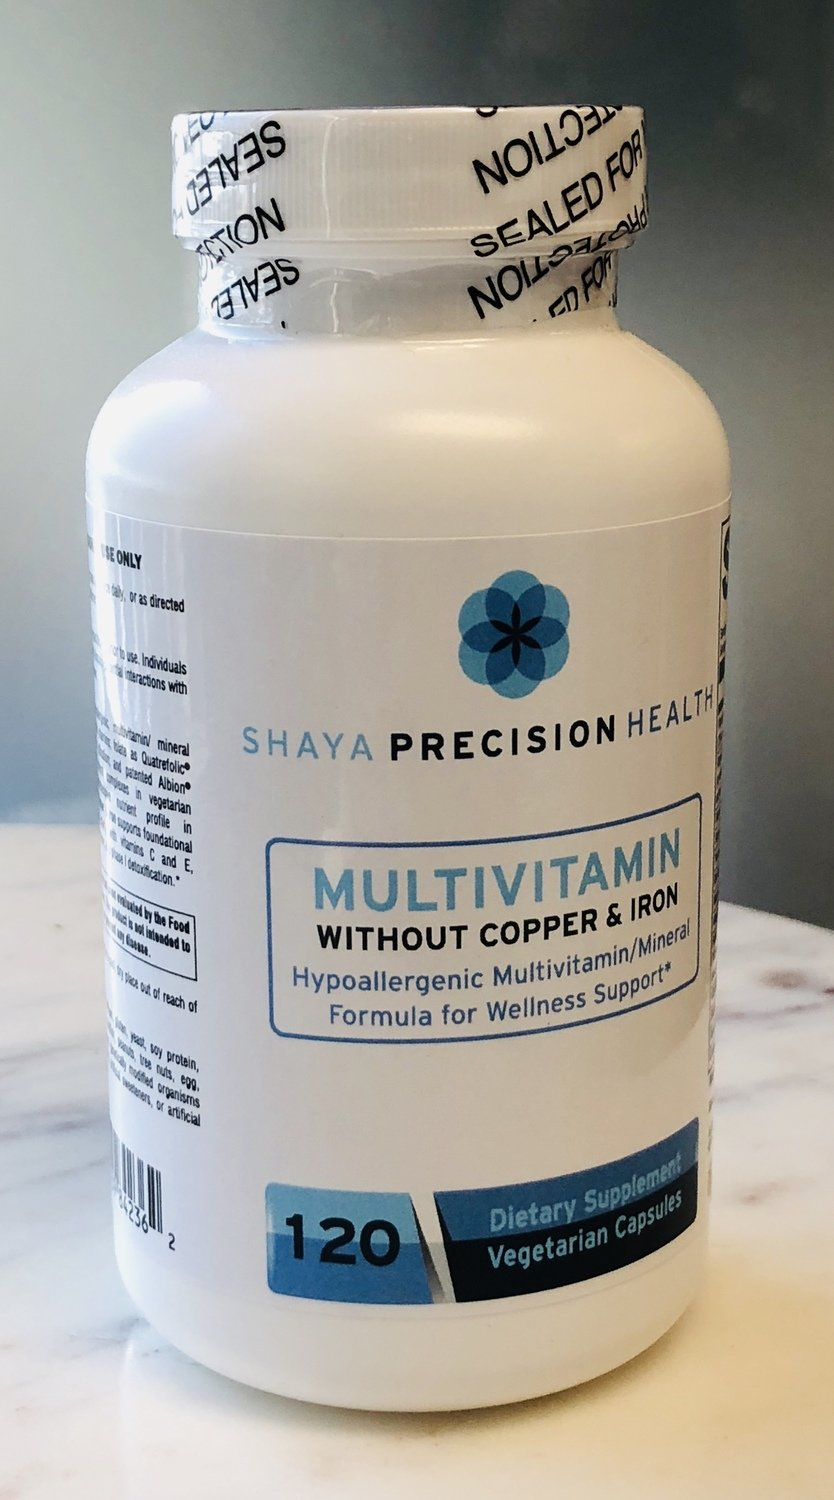 SPH MULTIVITAMIN W/O COPPER & IRON